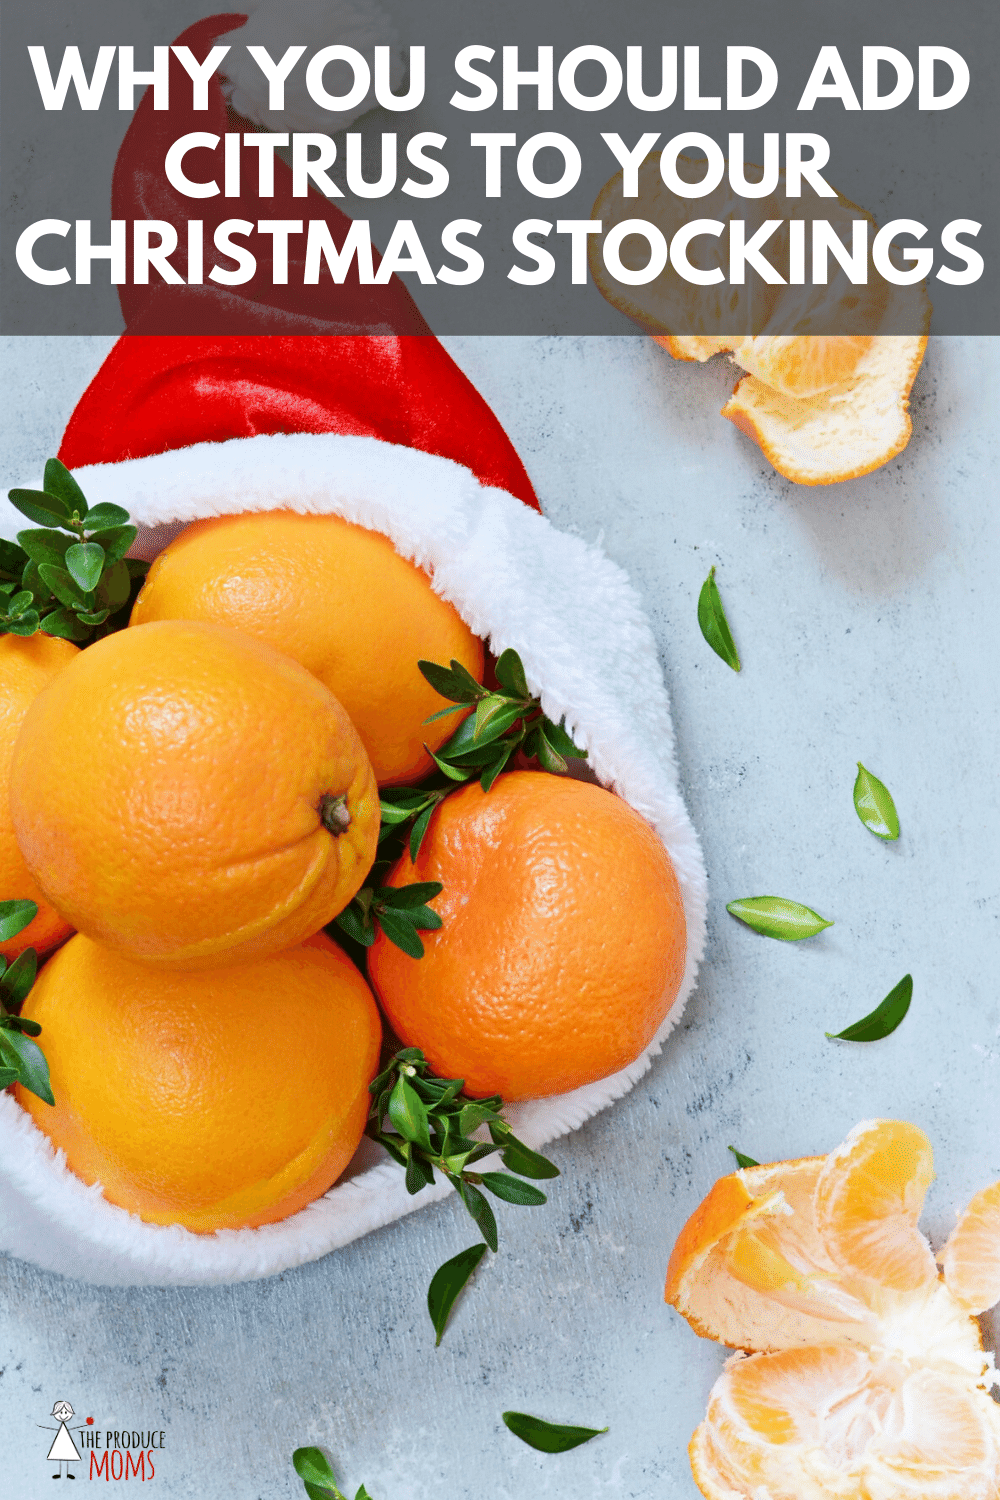 Adding Citrus To Christmas Stockings